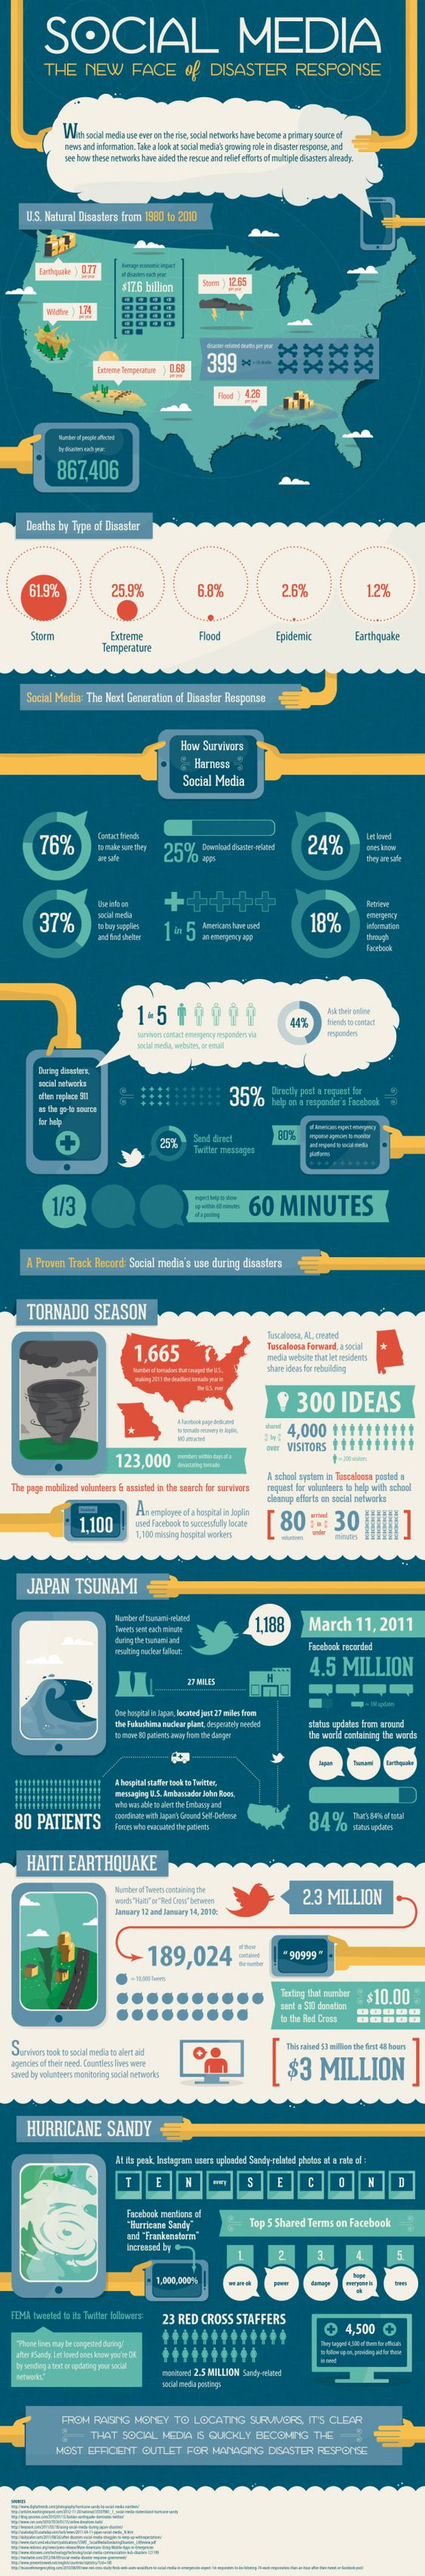 Social Media in Disaster Response Infographic by the University of San Francisco.